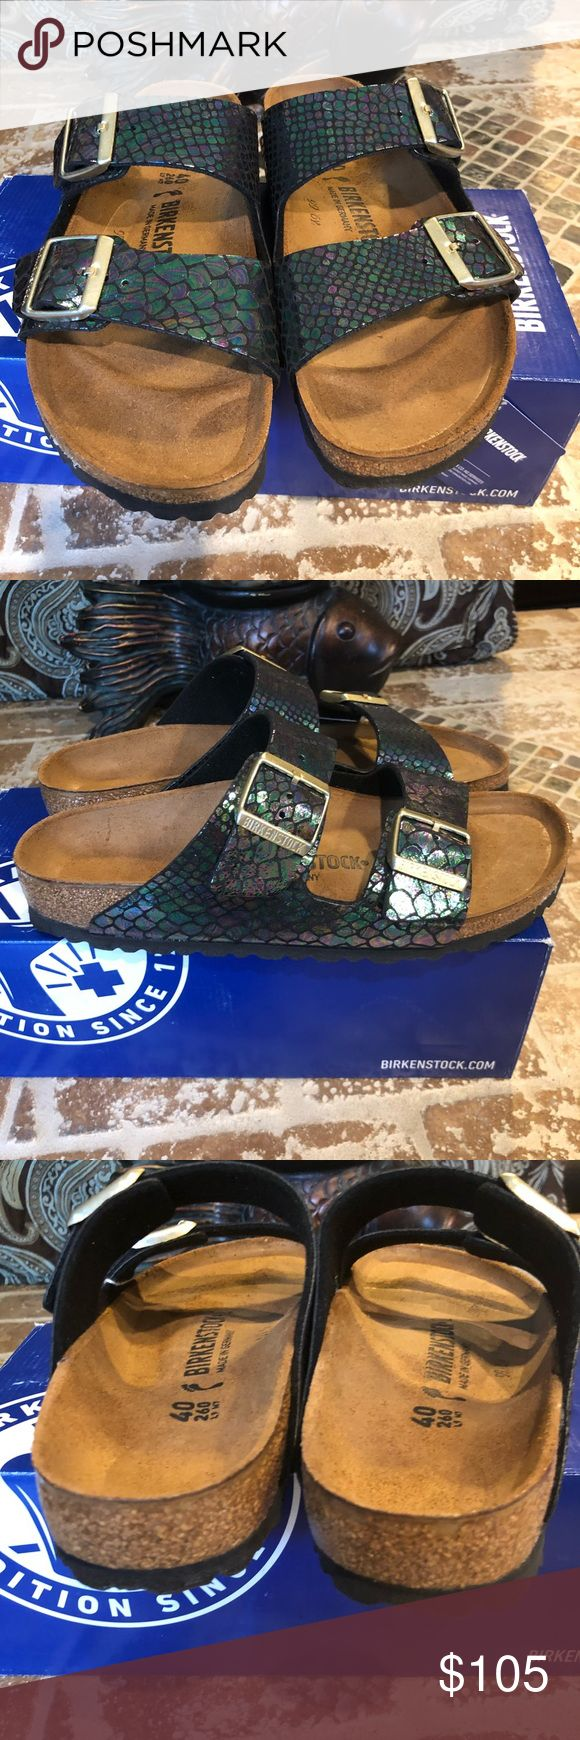 Birkenstock NWT Size 40 L9 Narrow Fit Brand new. Original box Arizona Birko-Flor Shiny Snake Black Multicolor The often imitated, never duplicated, category-defining, two-strap wonder from Birkenstock. A comfort legend and a fashion staple. With adjustable straps and a magical cork footbed that conforms to the shape of your foot, a truly custom fit is as effortless as the classic design. Birkenstock Shoes Sandals